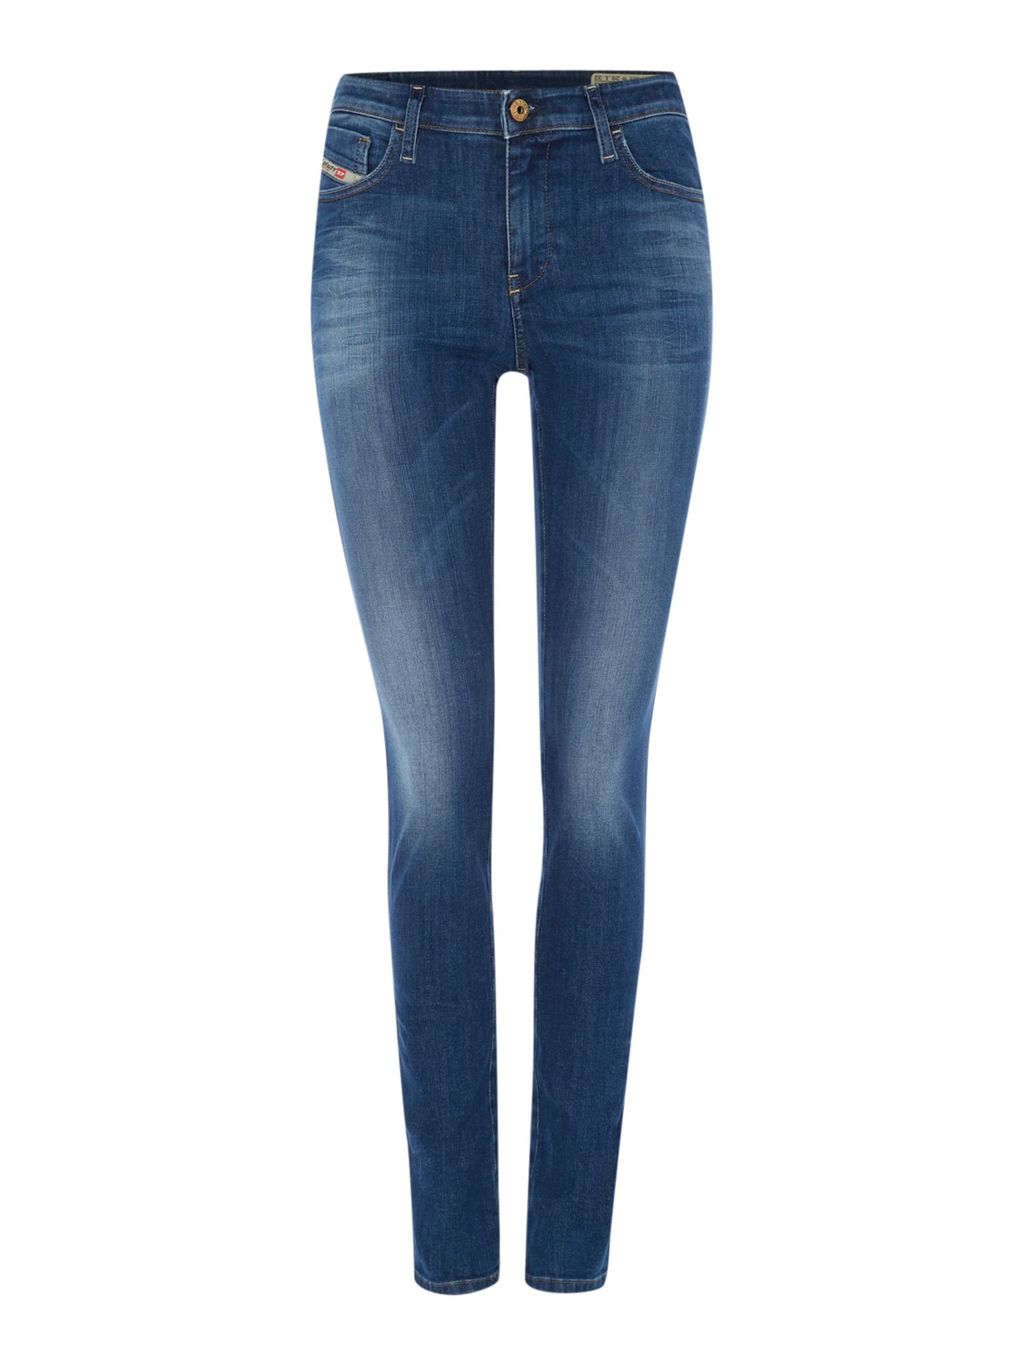 Skinzee 0826 F Skinny Leg 32 Jeans, Blue - style: skinny leg; length: standard; pattern: plain; pocket detail: traditional 5 pocket; waist: mid/regular rise; predominant colour: navy; occasions: casual; fibres: cotton - stretch; jeans detail: whiskering, washed/faded; texture group: denim; pattern type: fabric; season: s/s 2016